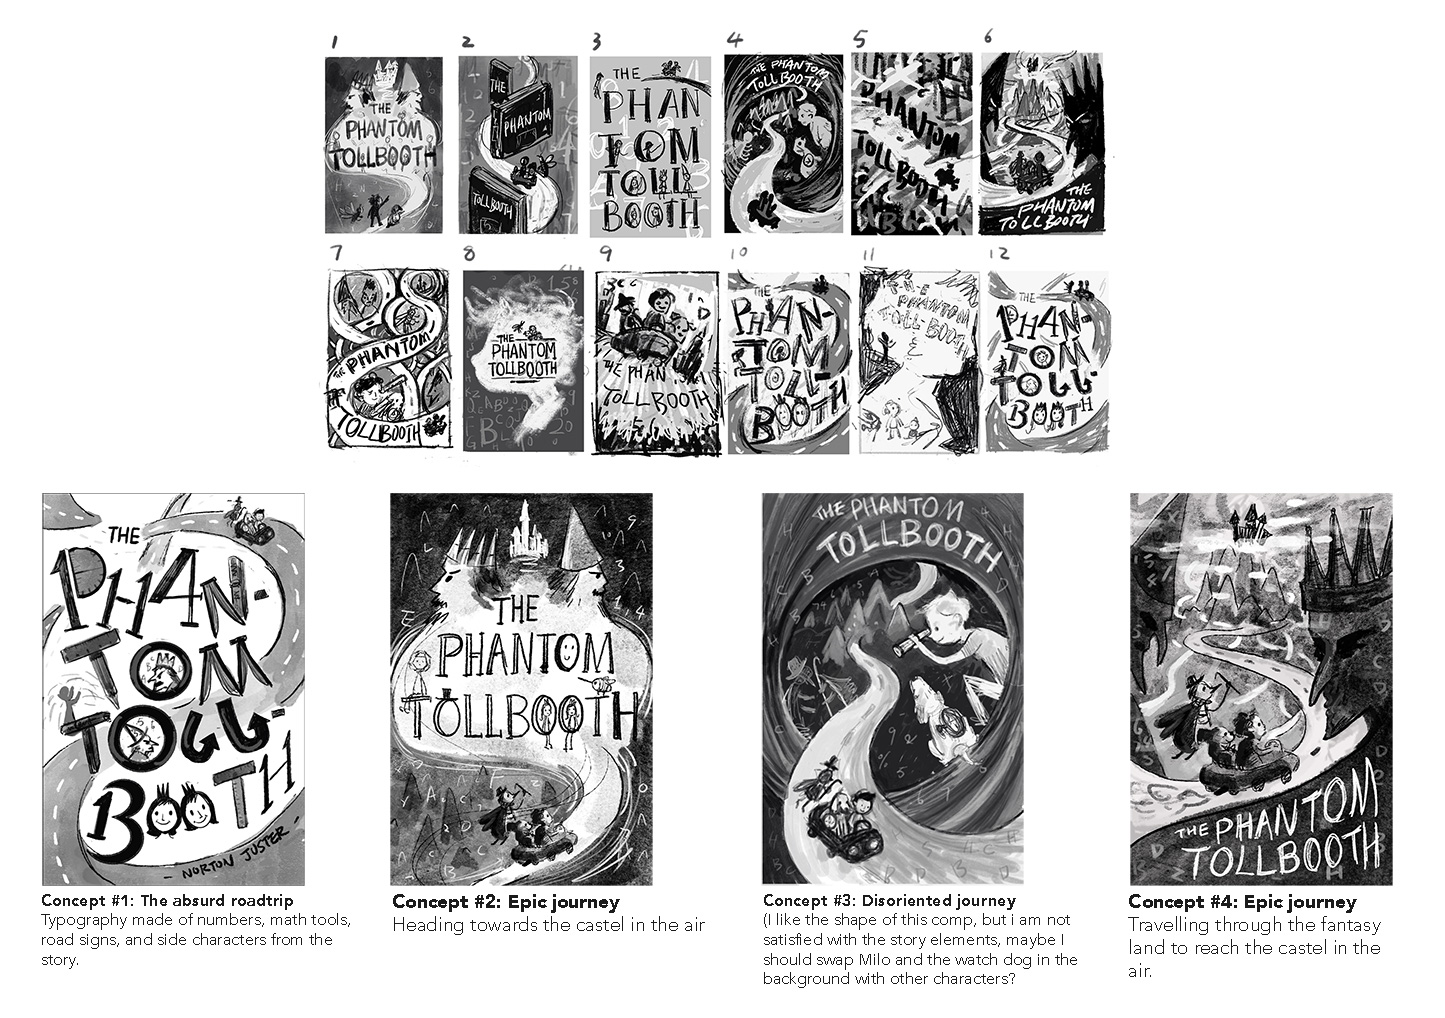 Thumbnails and rough sketches for the book cover.